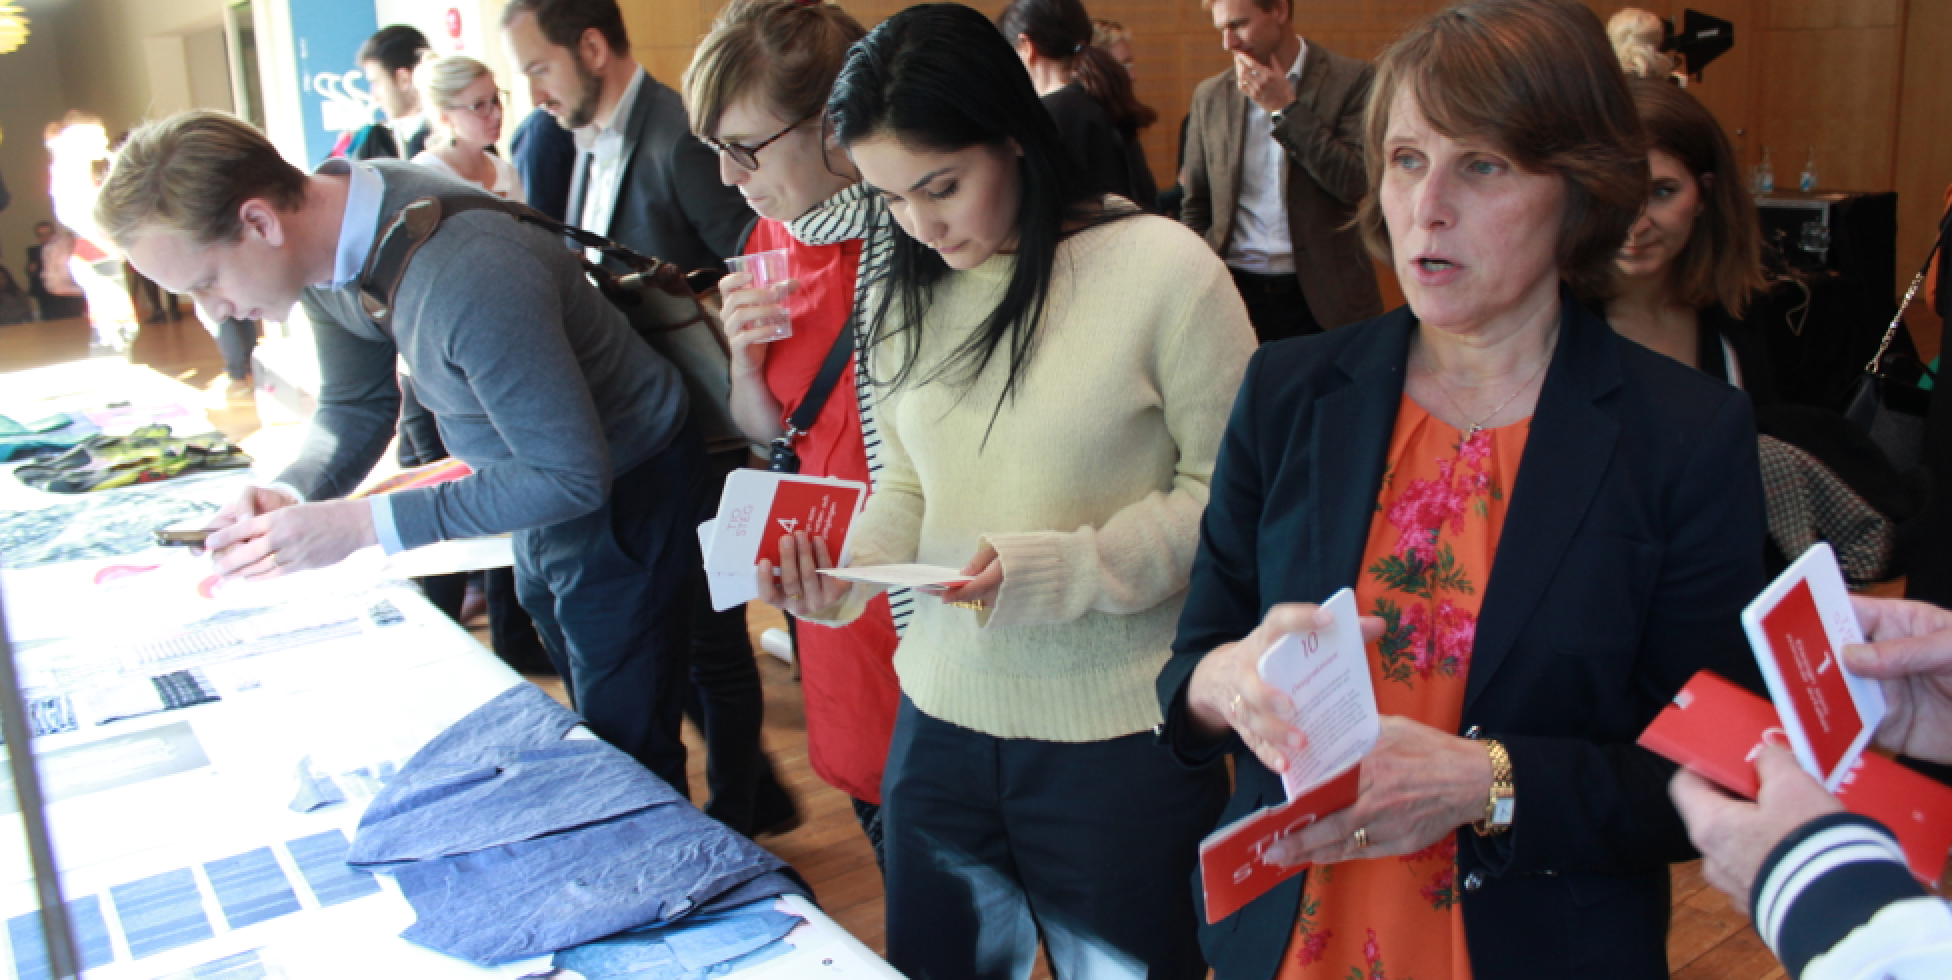 Industry visitors look at the Textile Toolbox work and the Swedish language TED's The TEN cards, at the launch of the Mistra Future Fashion Manifesto, held at Stockholm School of Economics, September 2015.